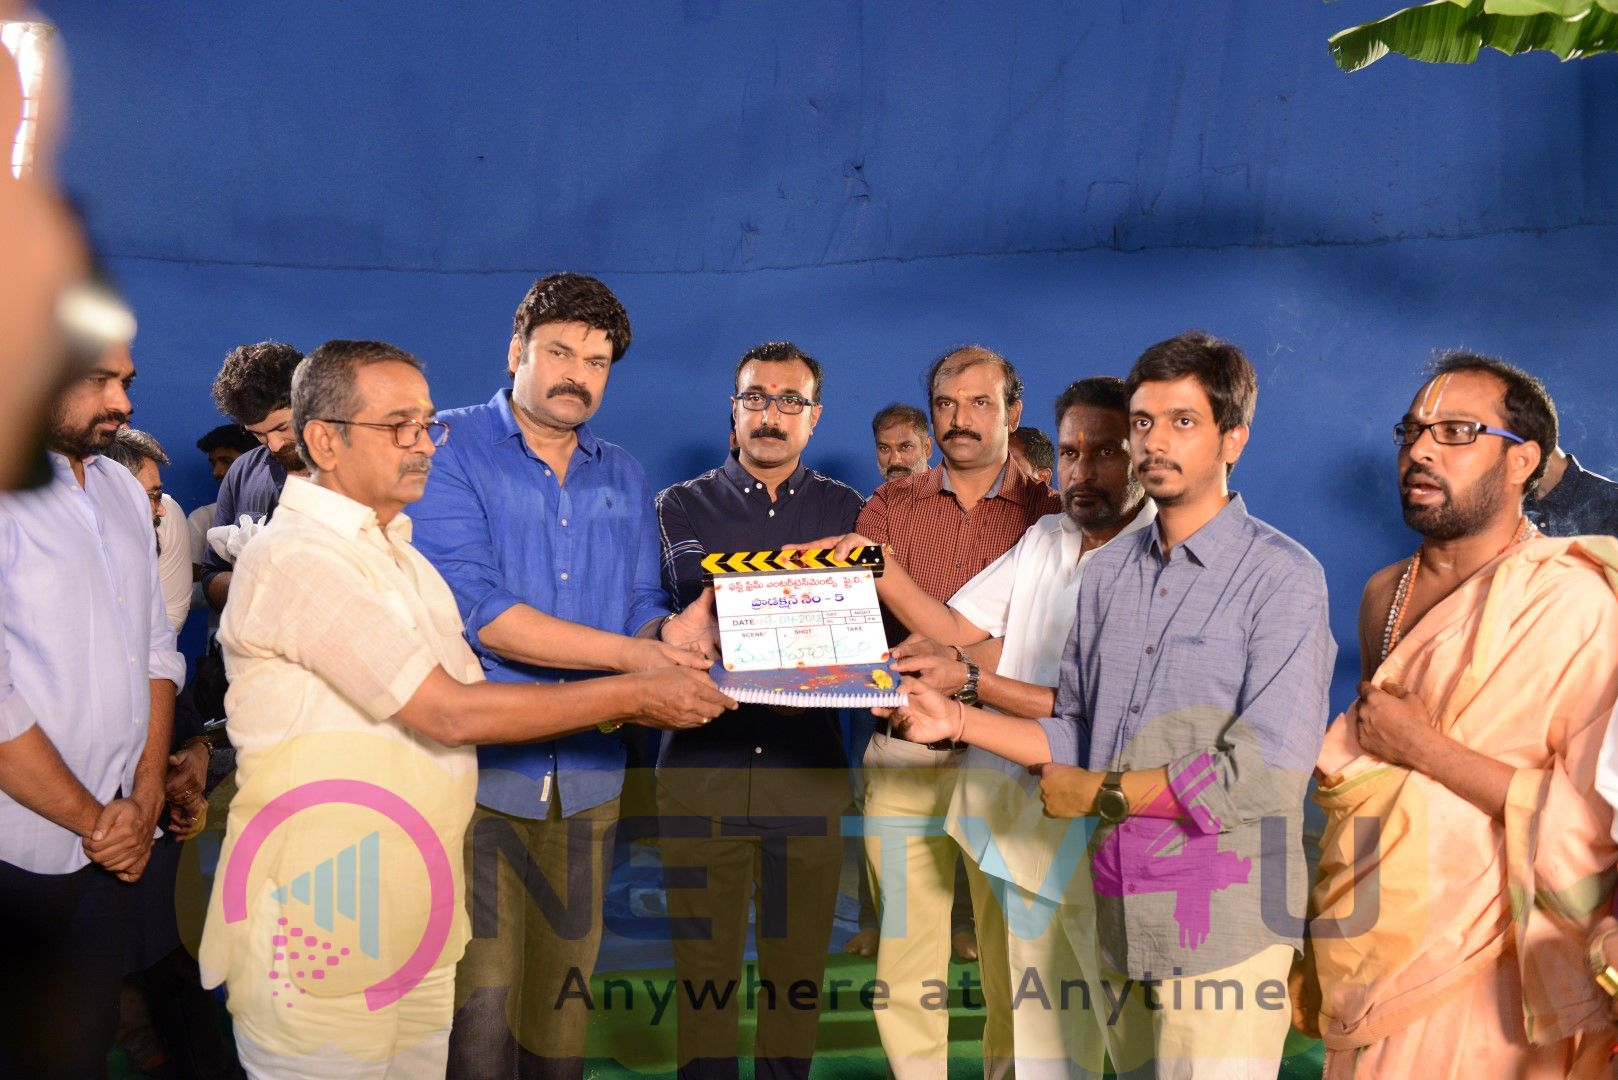 Varun Tej, Sankalp Reddy Film In First Frame Entertainment Pvt. Ltd. Launched Stills